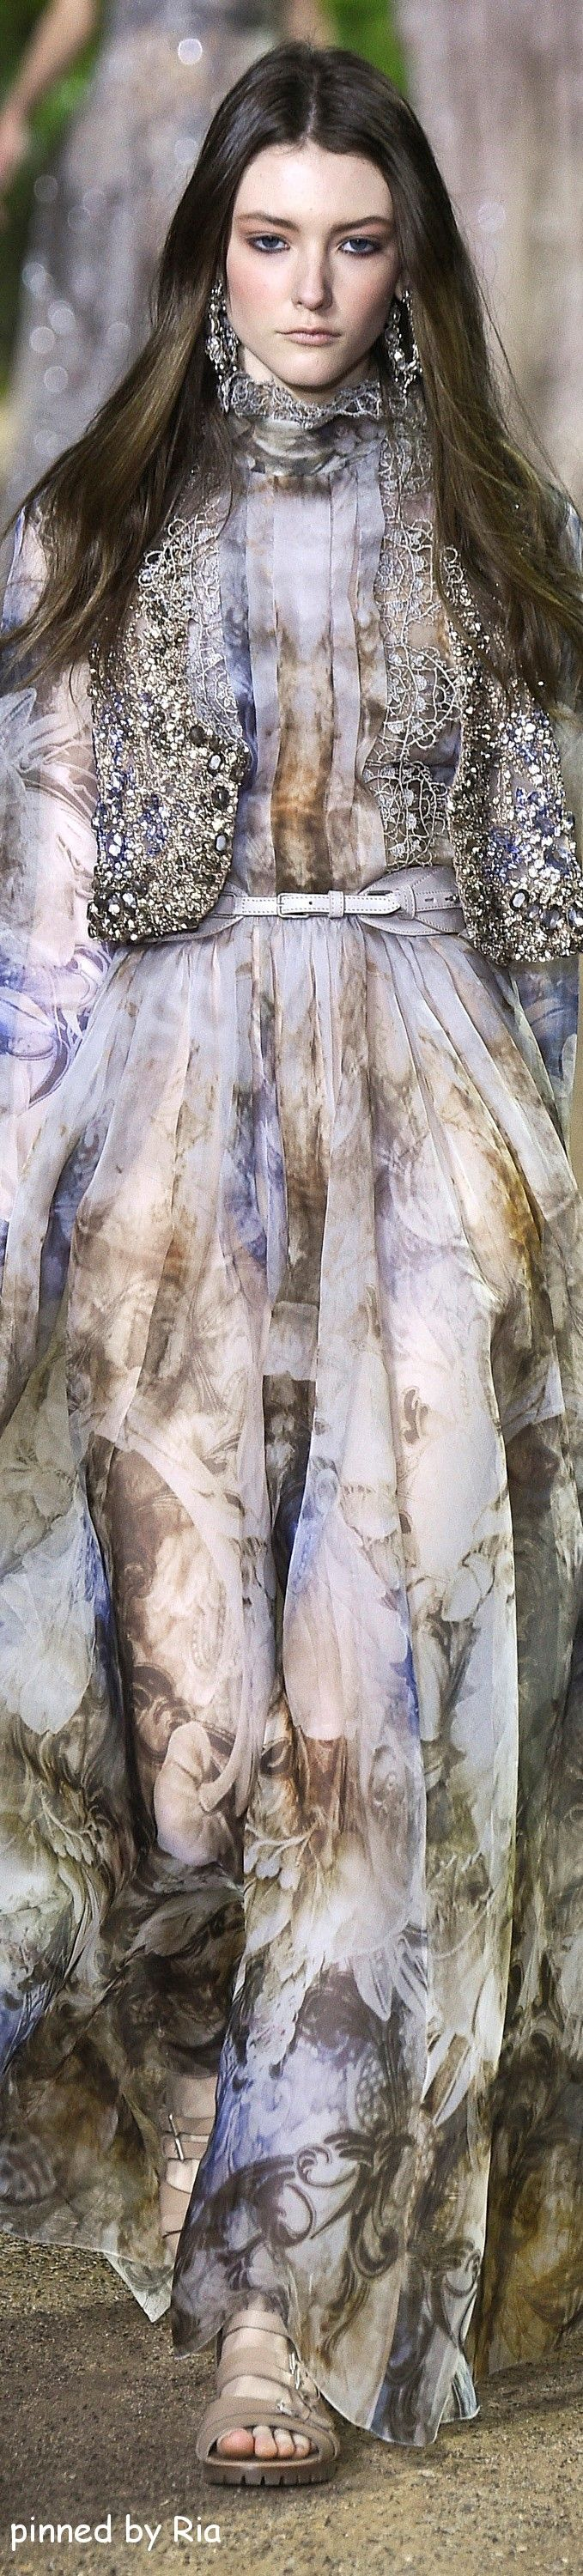 Elie Saab Spring 2016 Couture l Ria